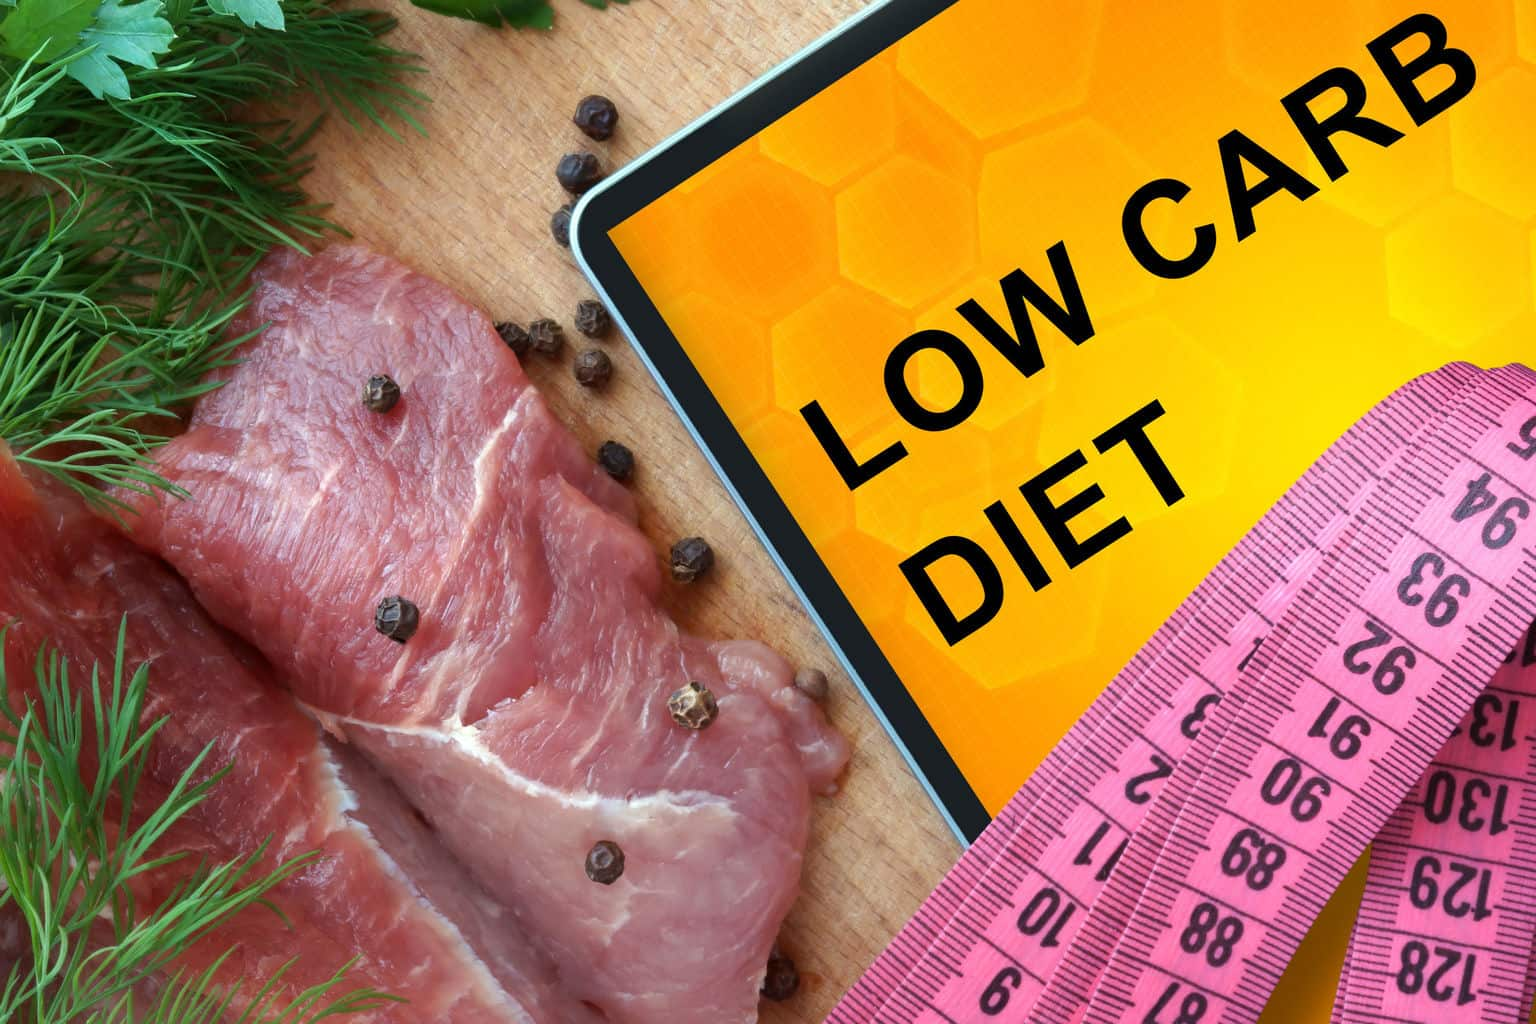 Why are low-carb diets bad?